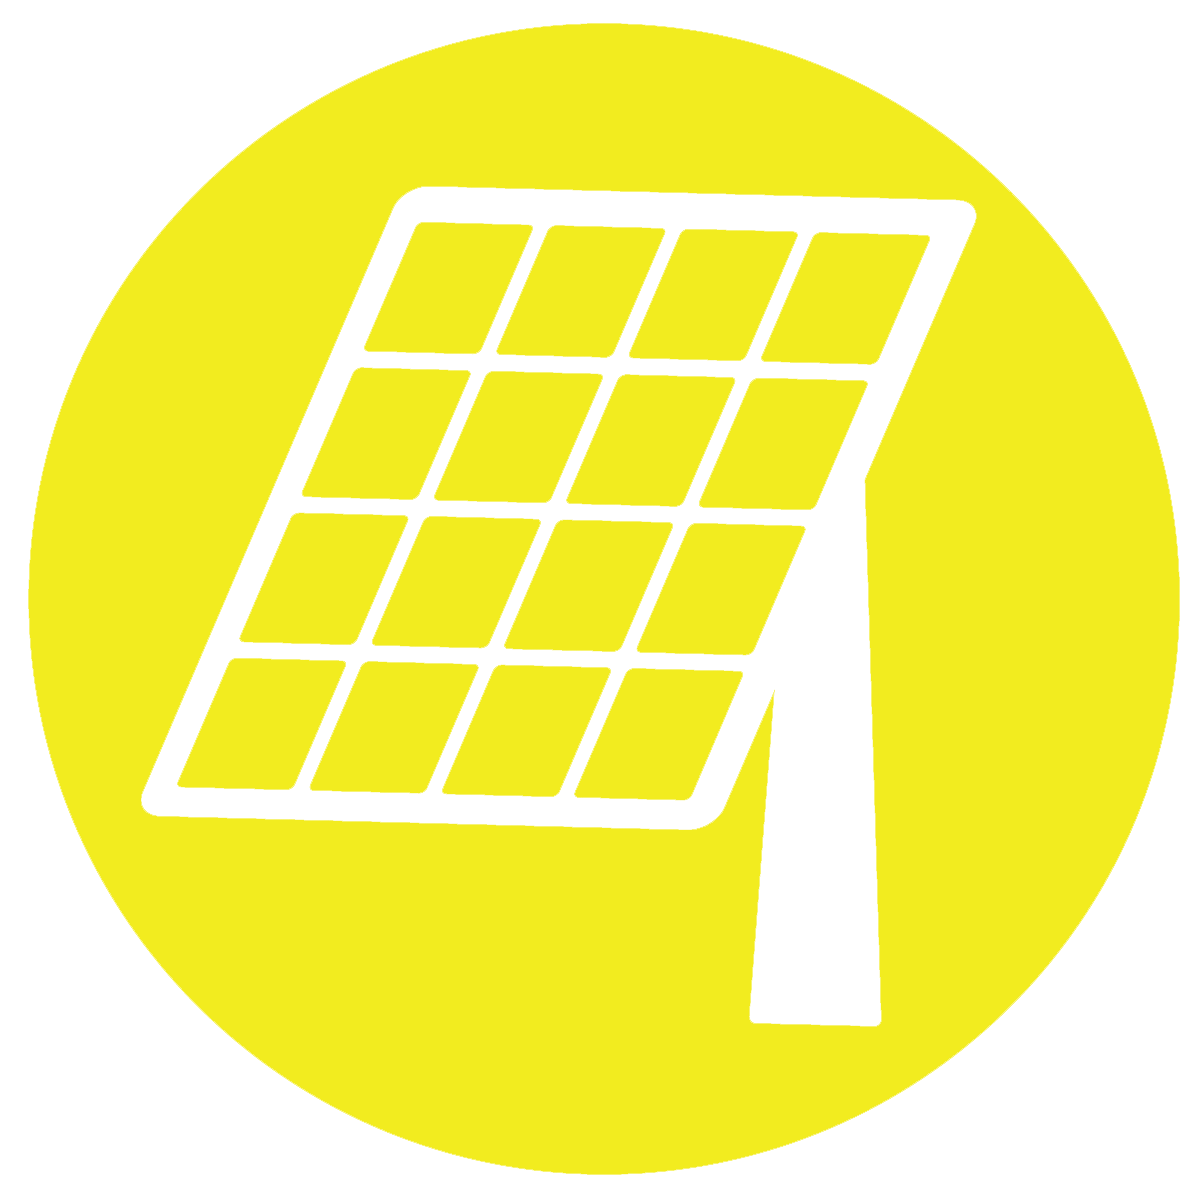 Solar panel icon on yellow background